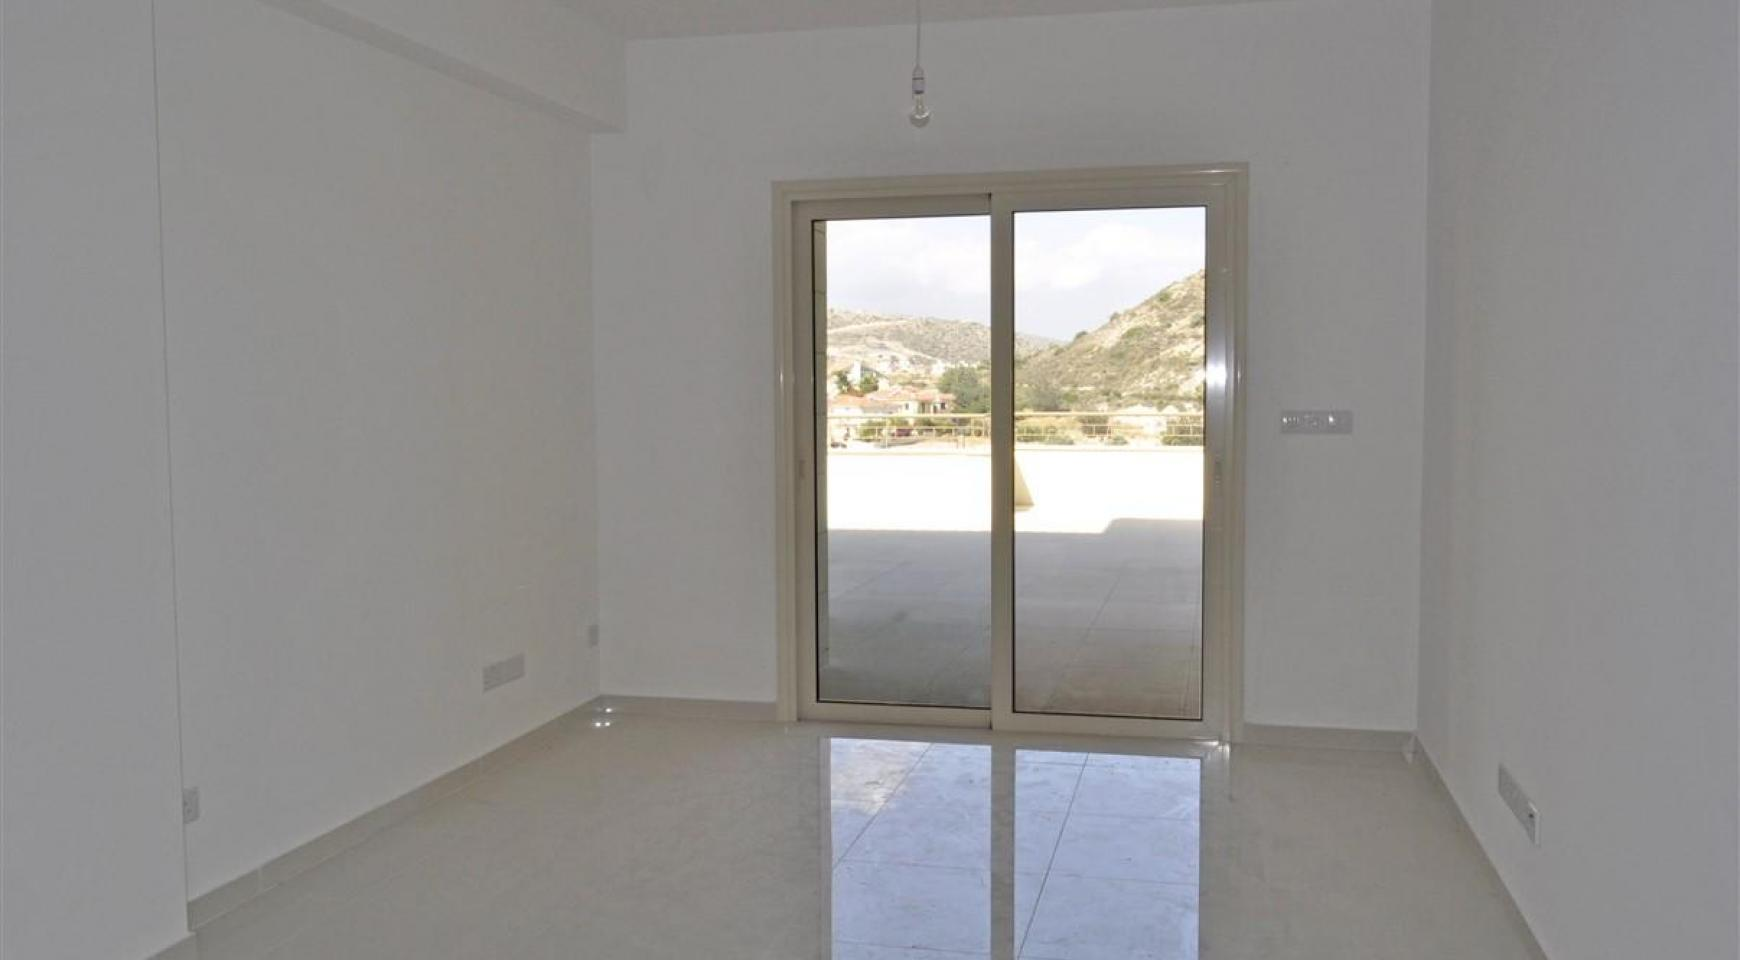 2 Bedroom Apartment with Amazing Views in Agios Athanasios - 10